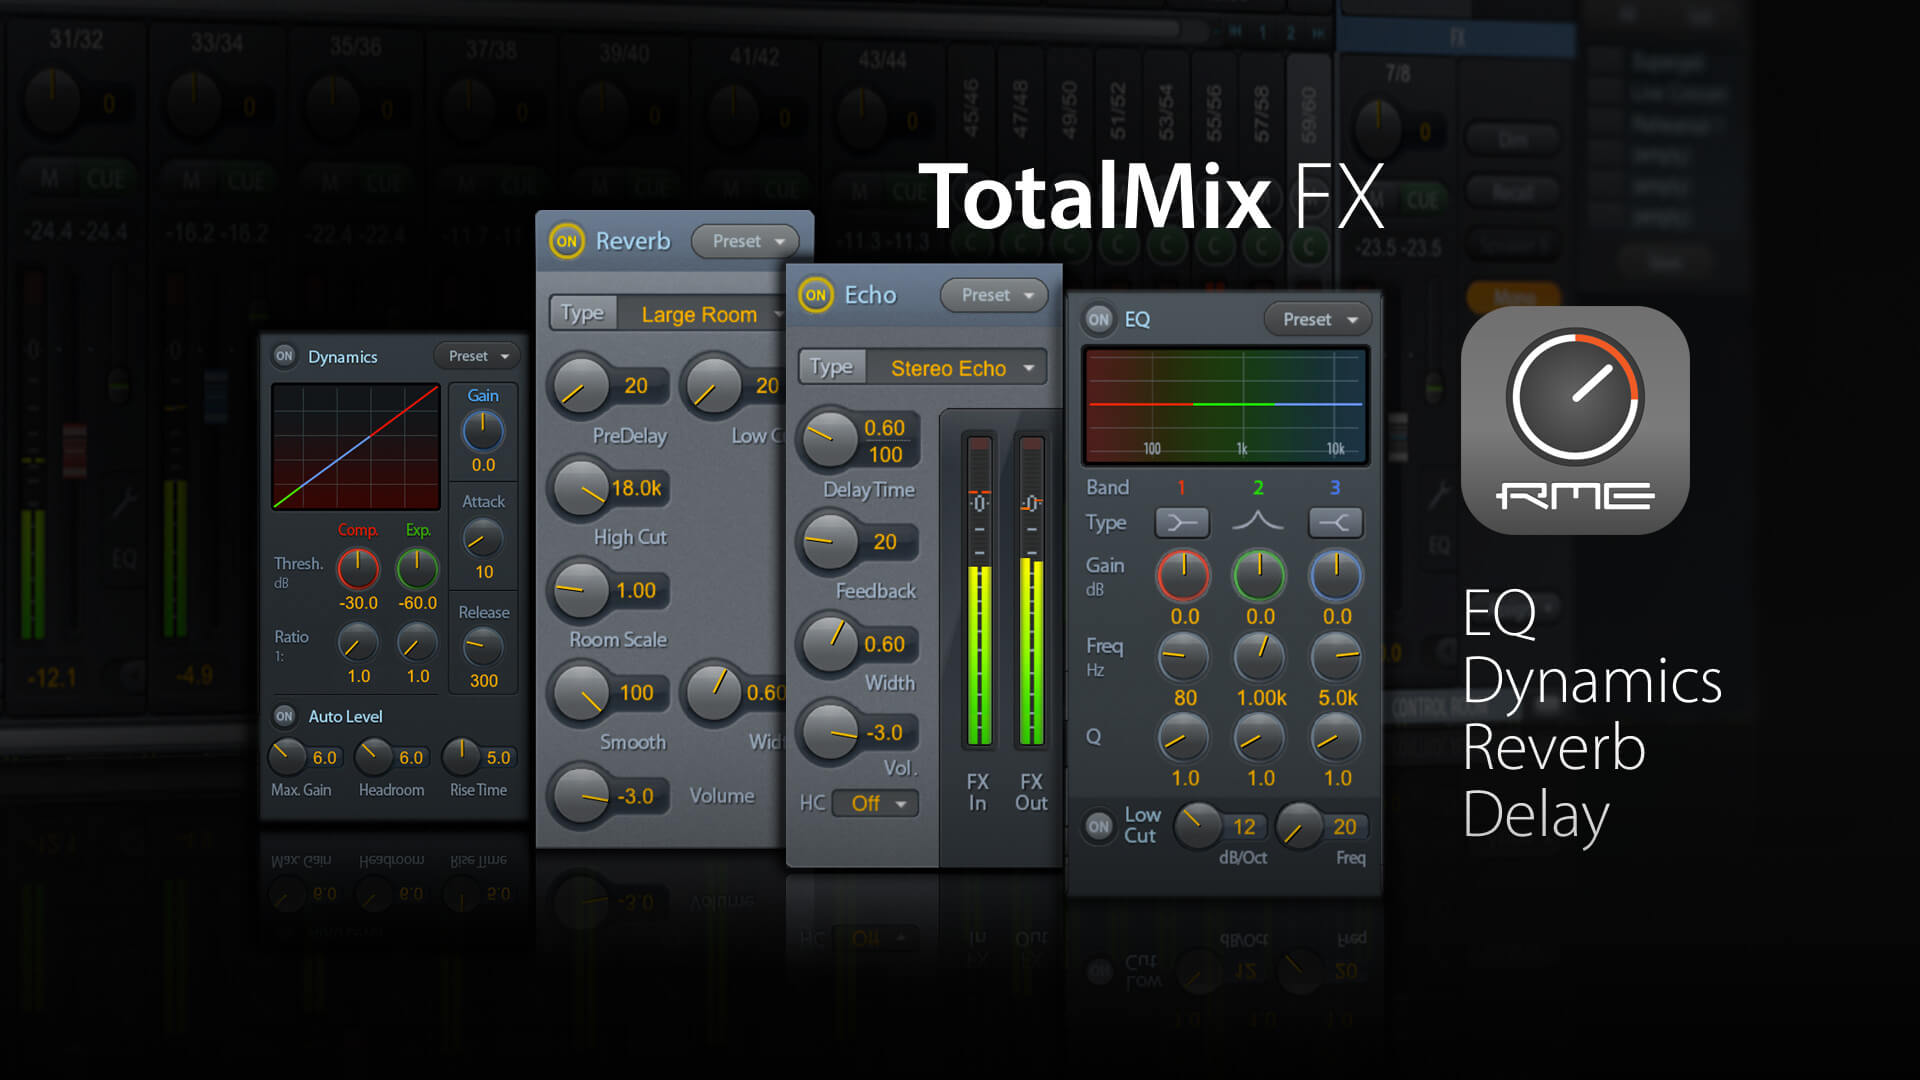 TotalMix FX DSP Effects